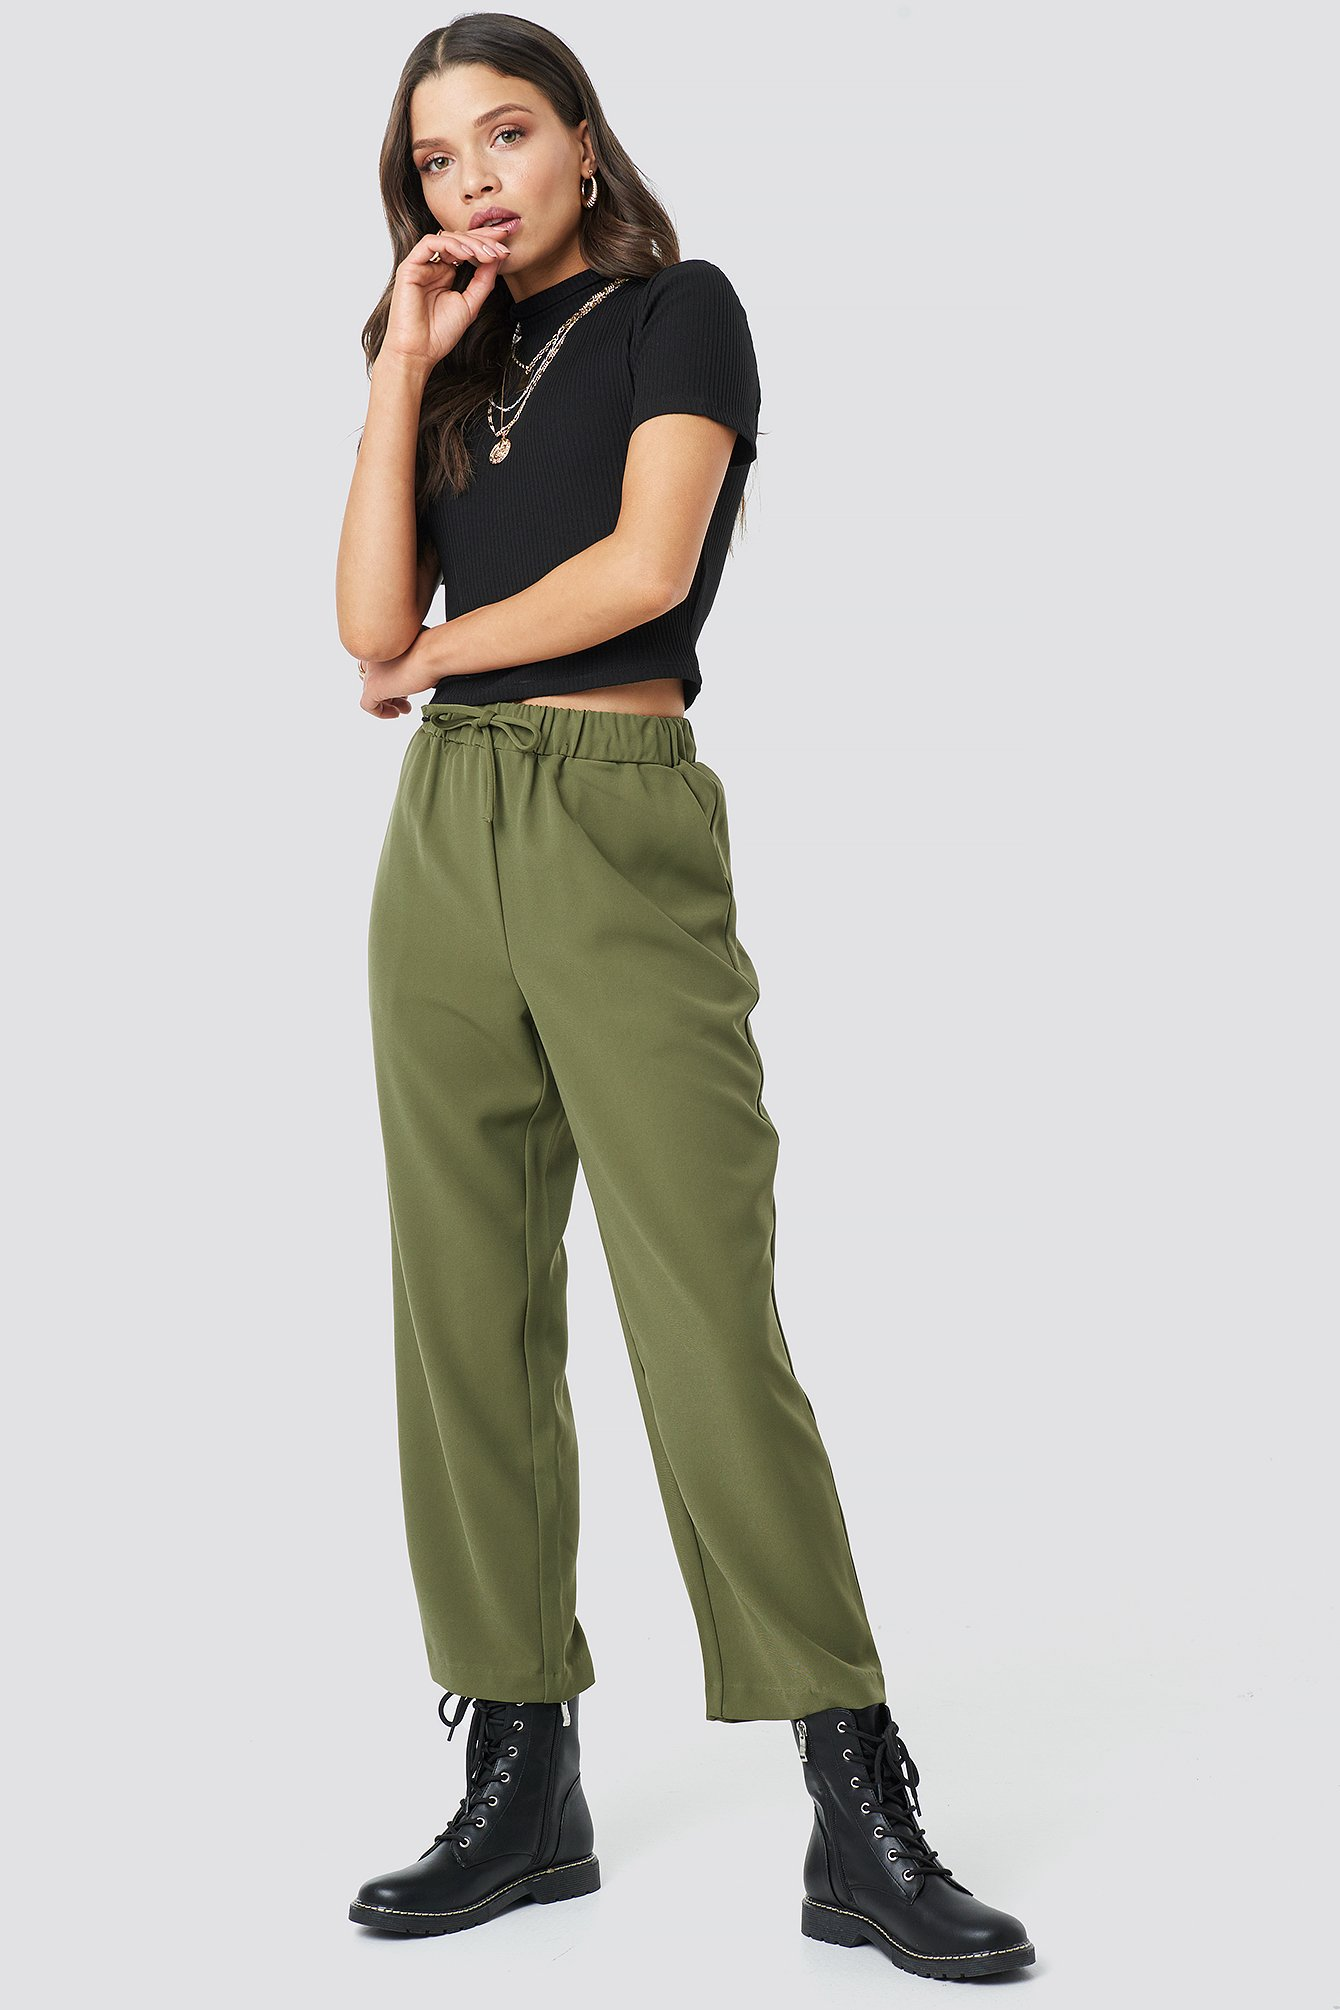 astrid olsen x na-kd -  Drawstring Suit Pants - Green